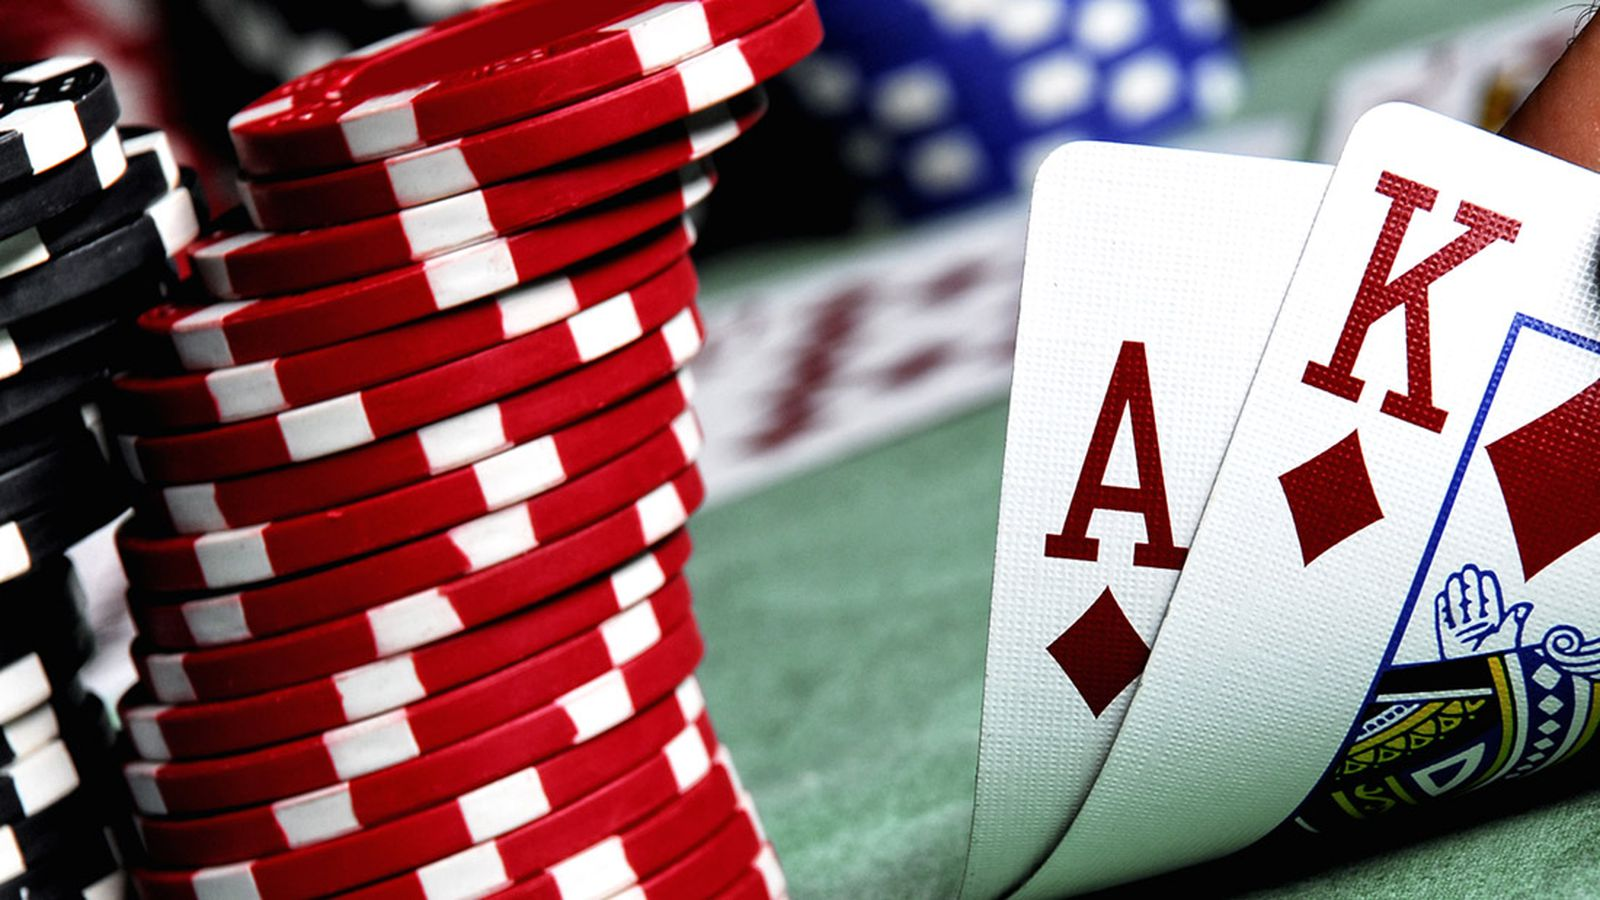 Online fake gambling a directory of gambling resources and online